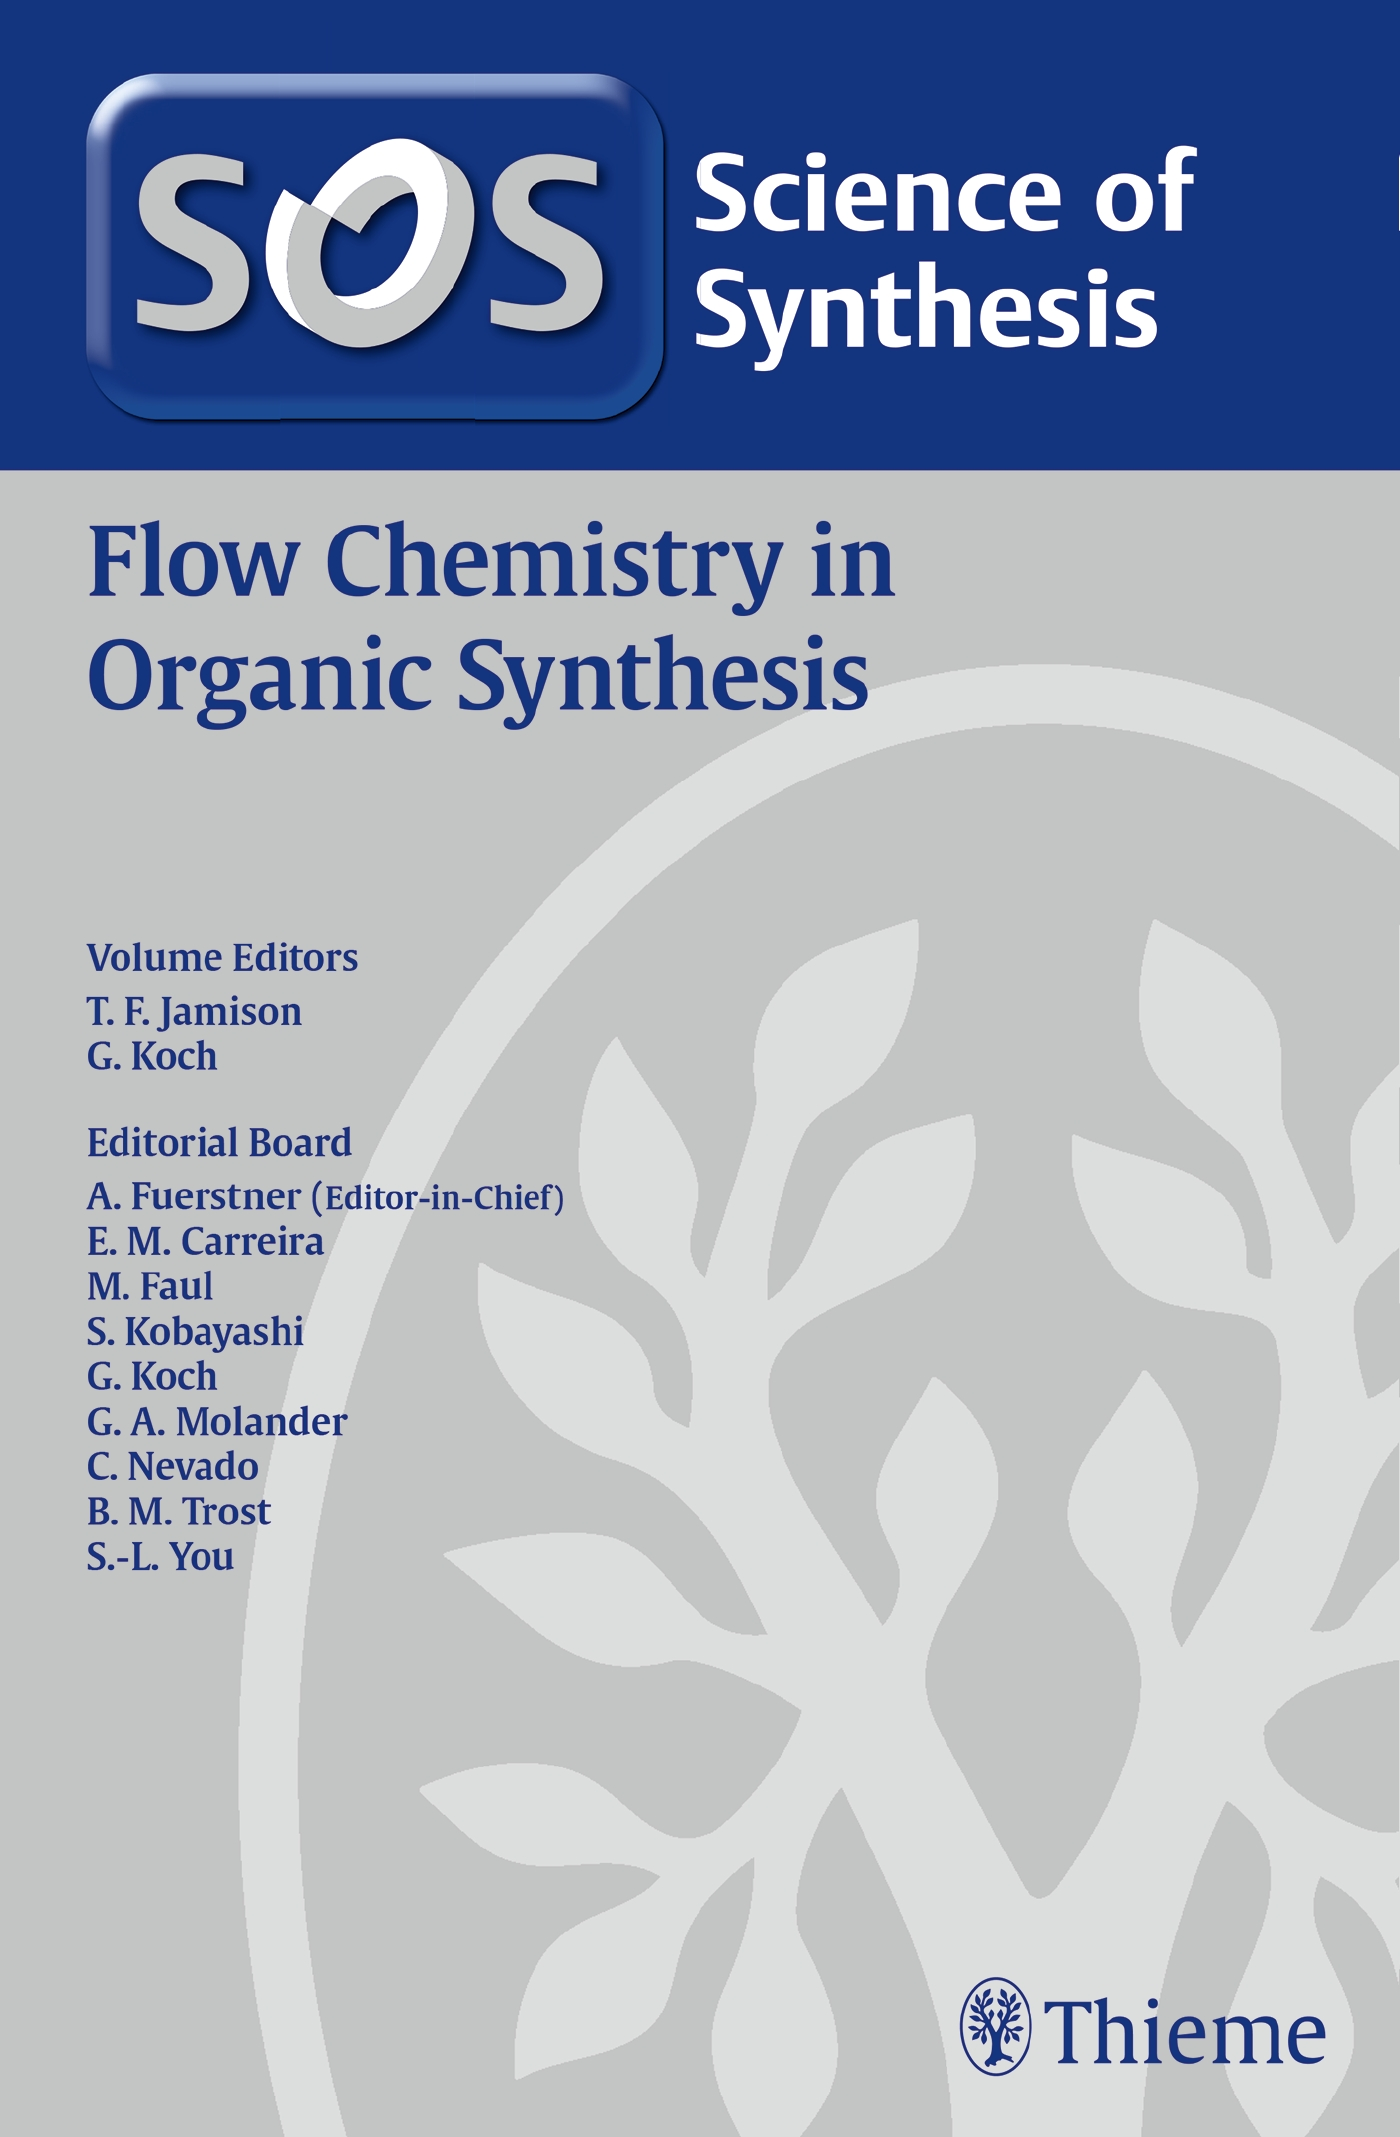 Science of Synthesis: Flow Chemistry in Organic Synthesis